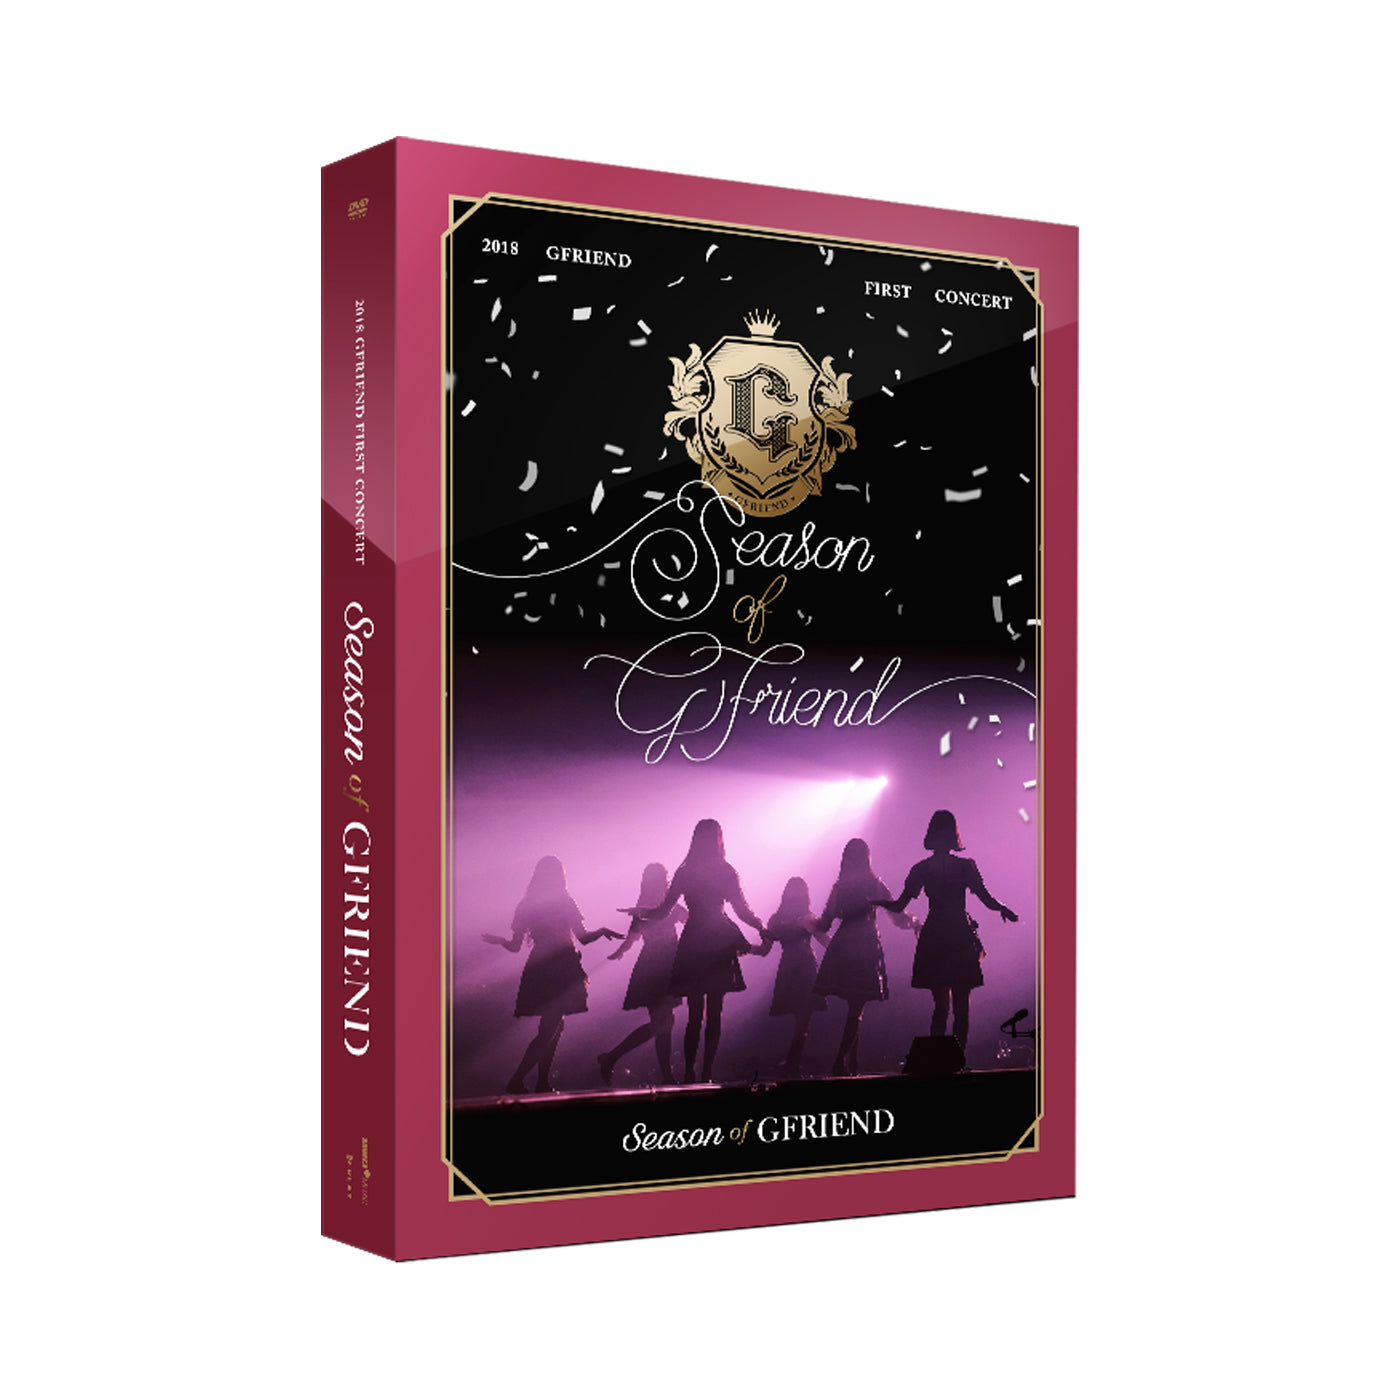 GFRIEND '2018 FIRST CONCERT SEASON OF GFRIEND' DVD